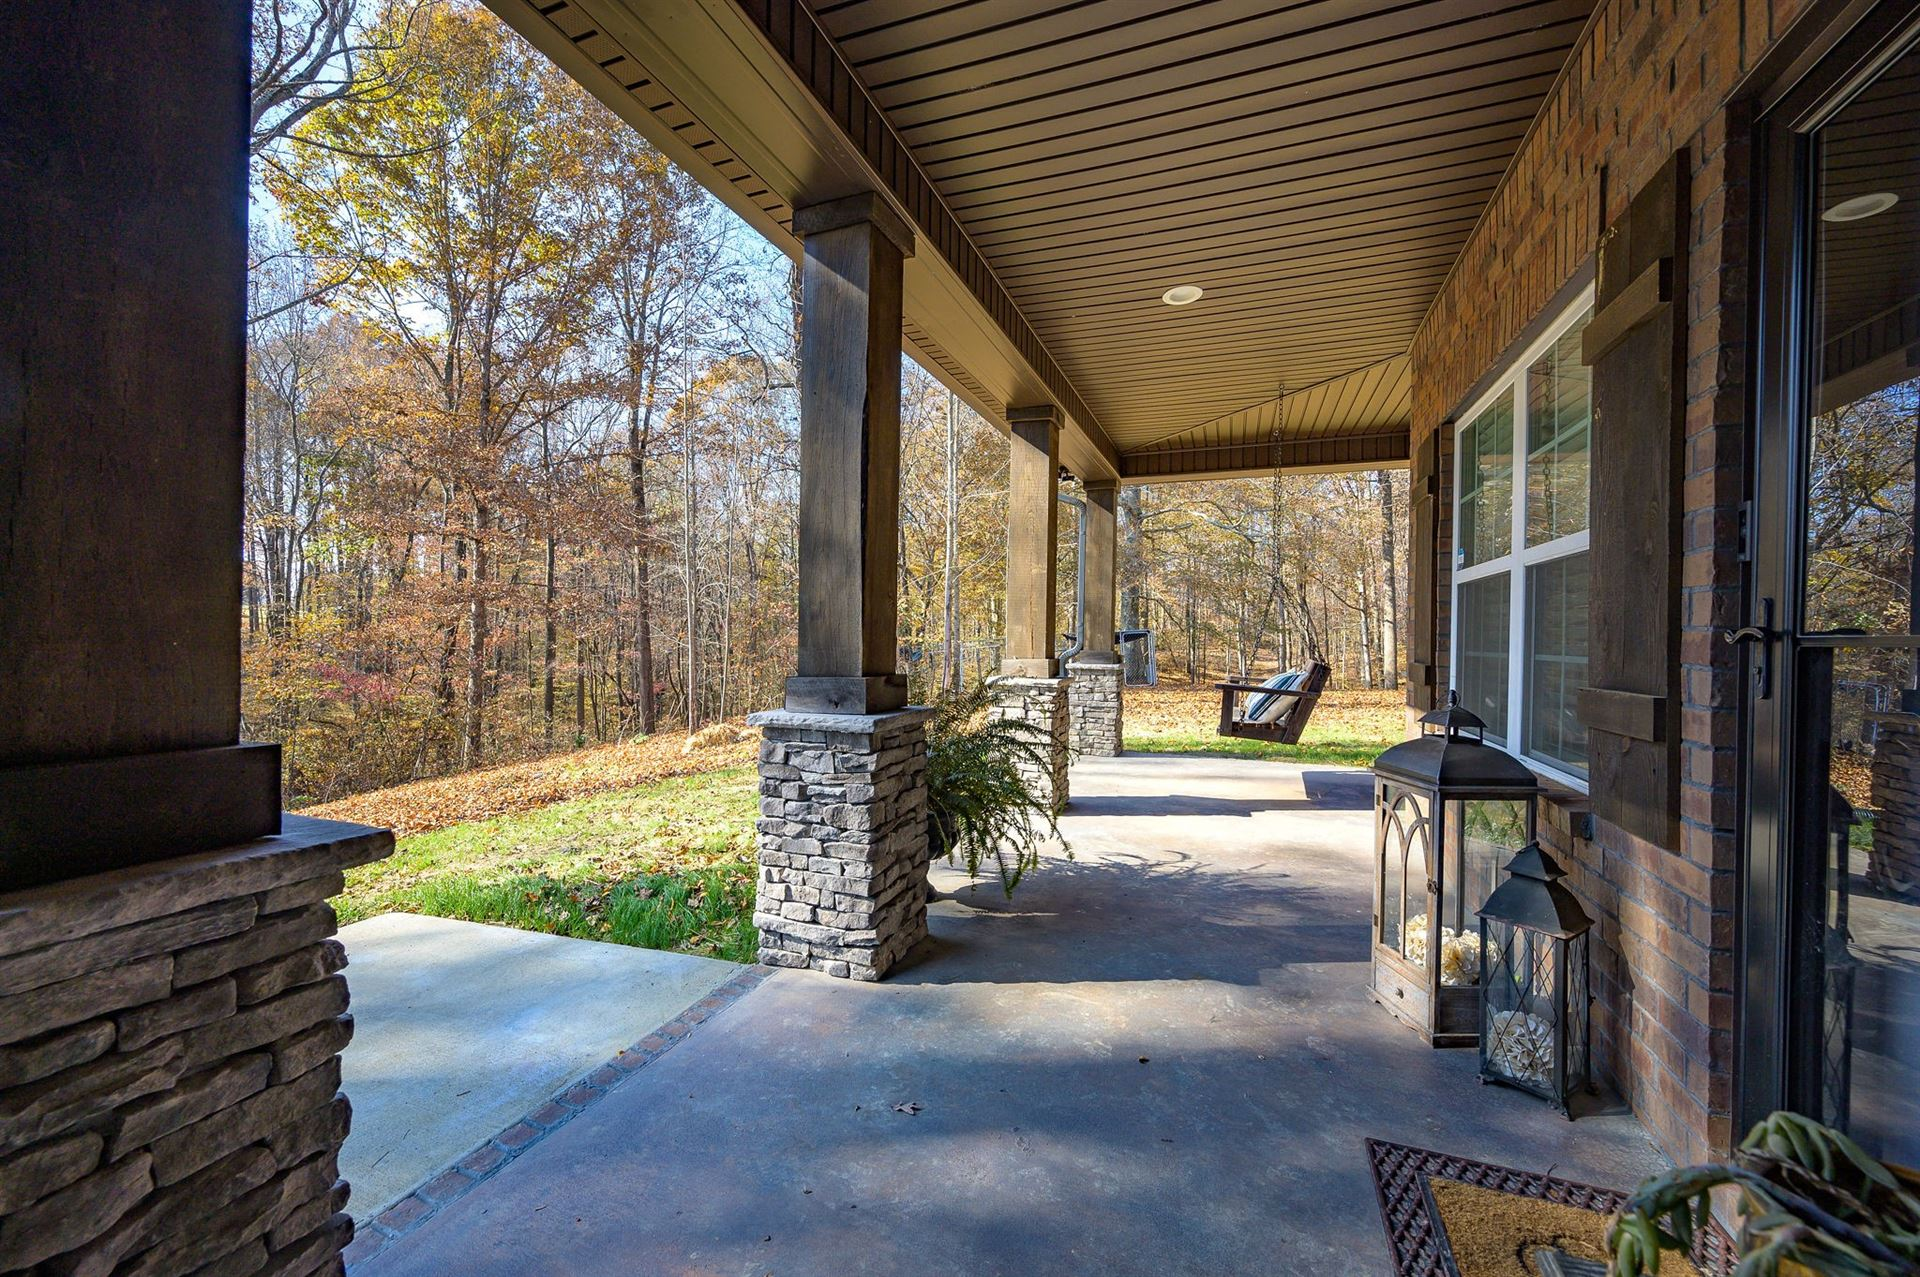 Photo for 65 Sheltontown Rd, Manchester, TN 37355 (MLS # 2101066)